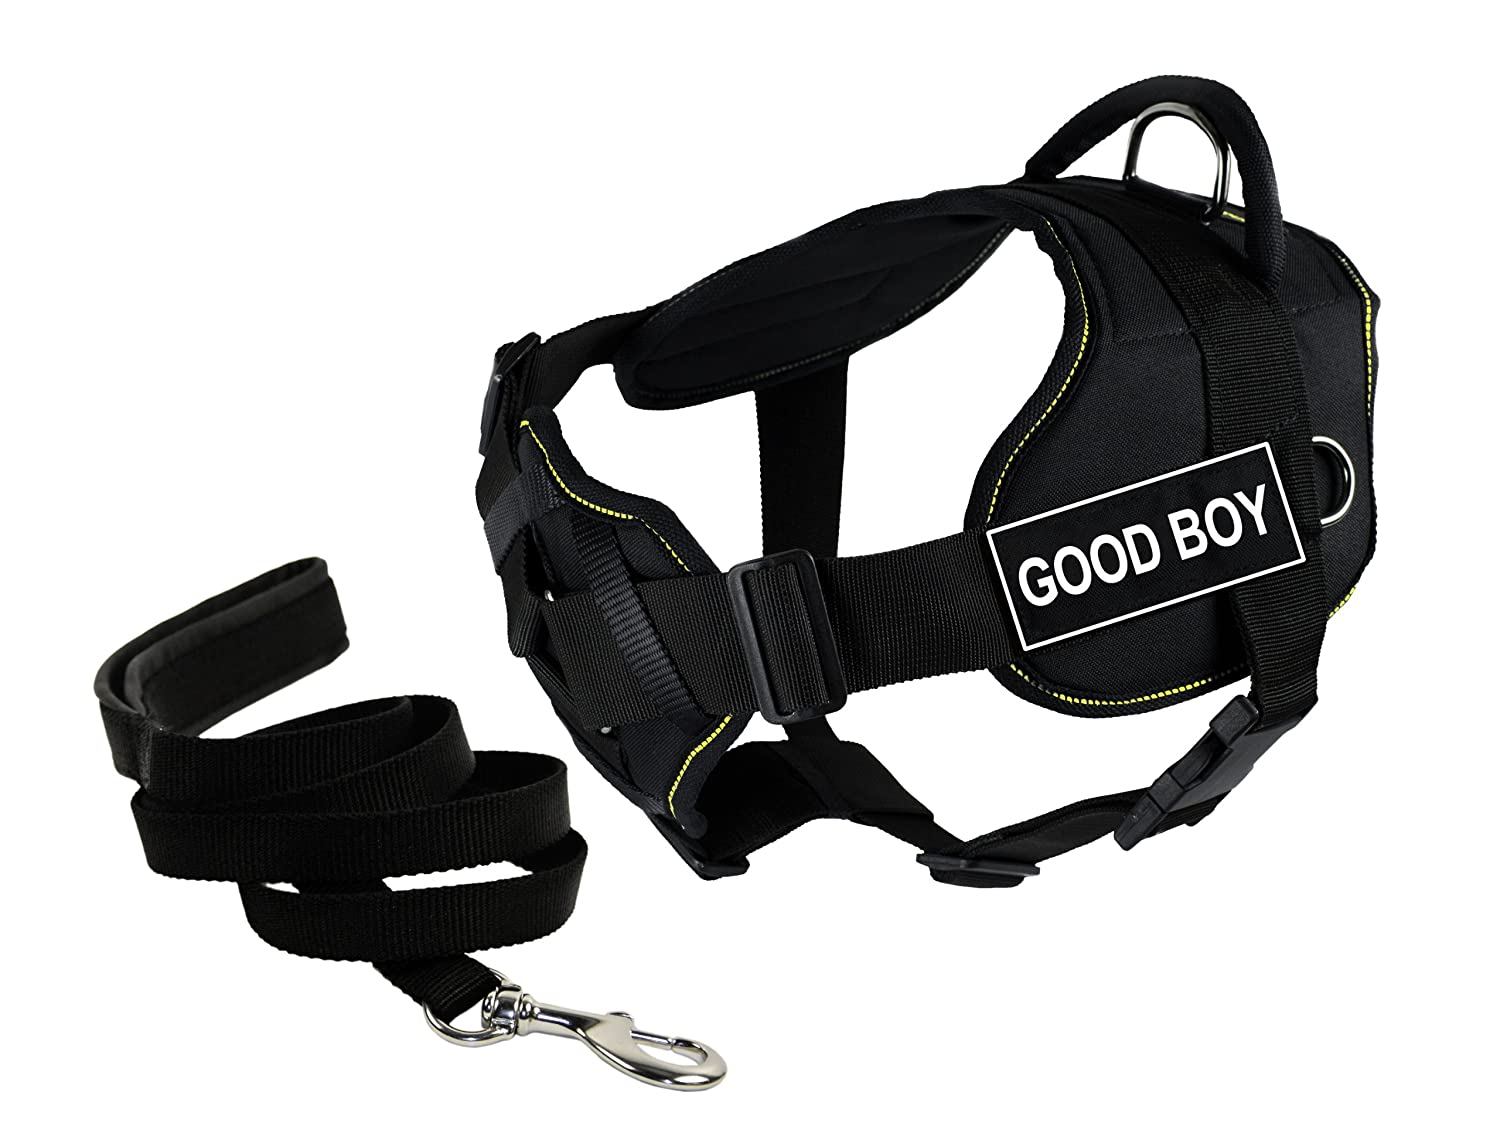 Dean & Tyler's DT Fun Chest Support GOOD BOY Harness, Large, with 6 ft Padded Puppy Leash.